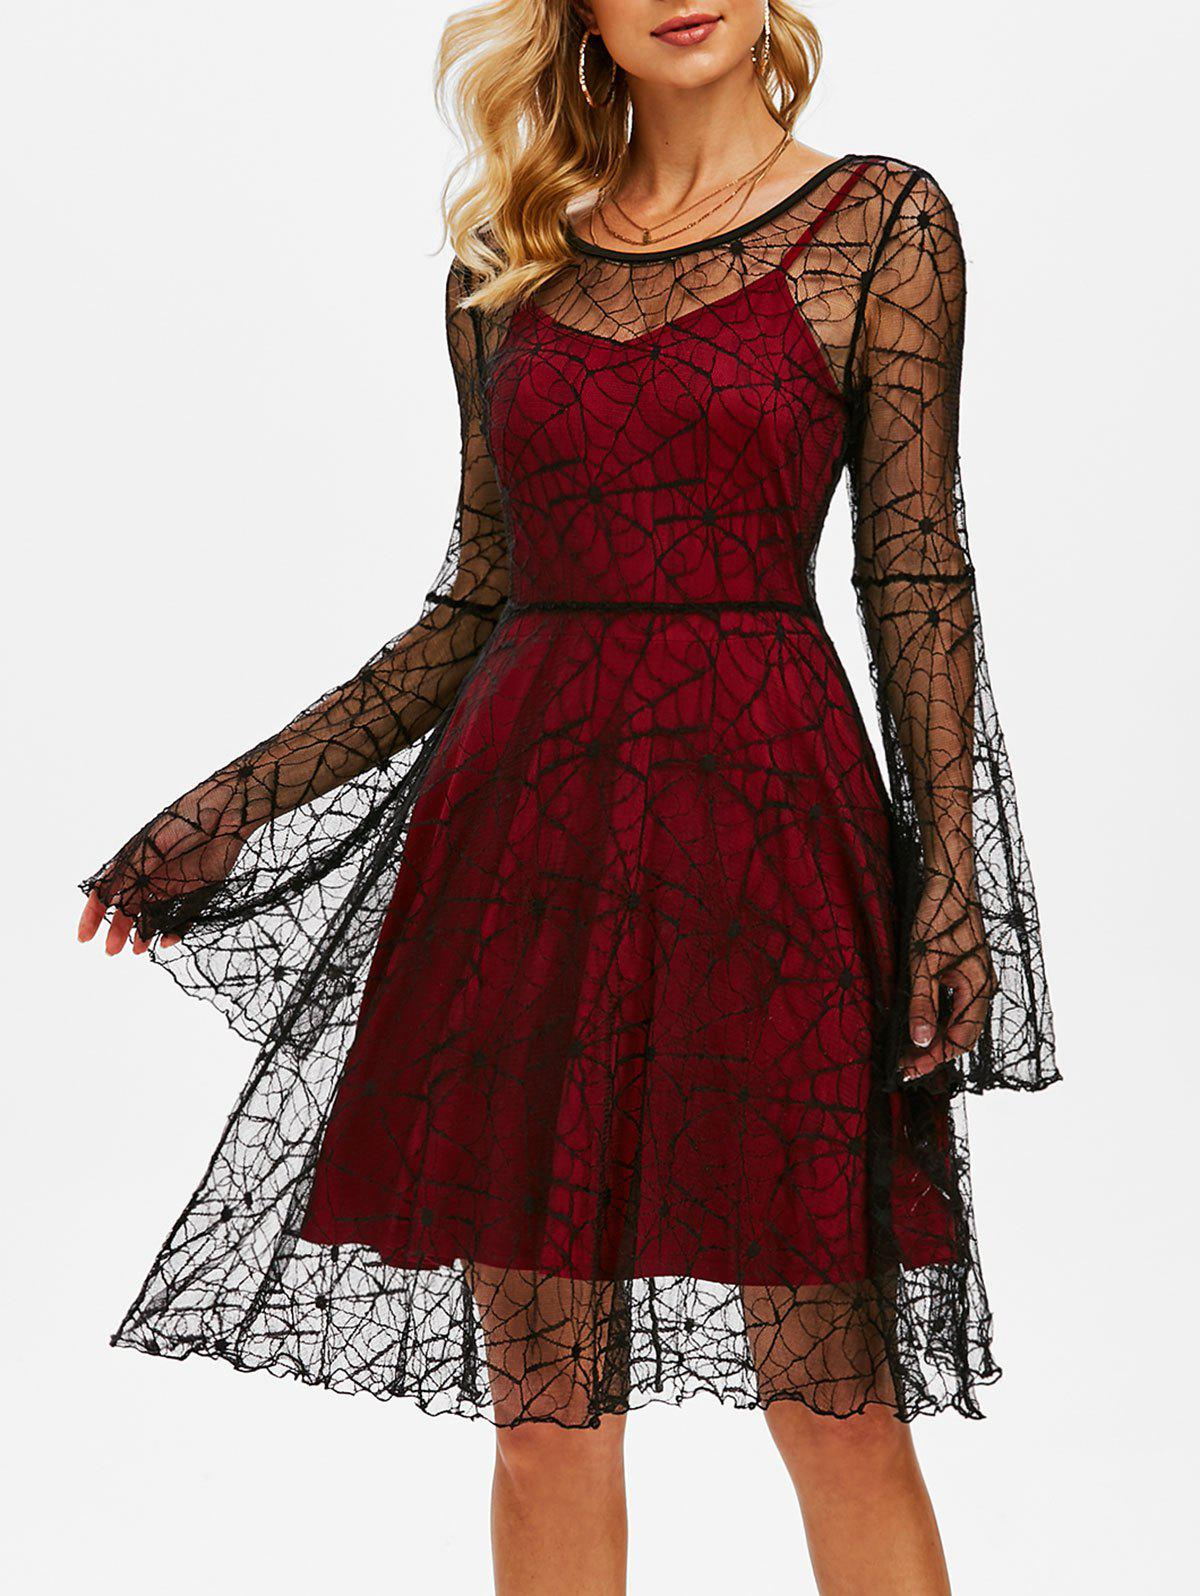 Chic Halloween Spider Web Lace Dress with Plain Cami Dress